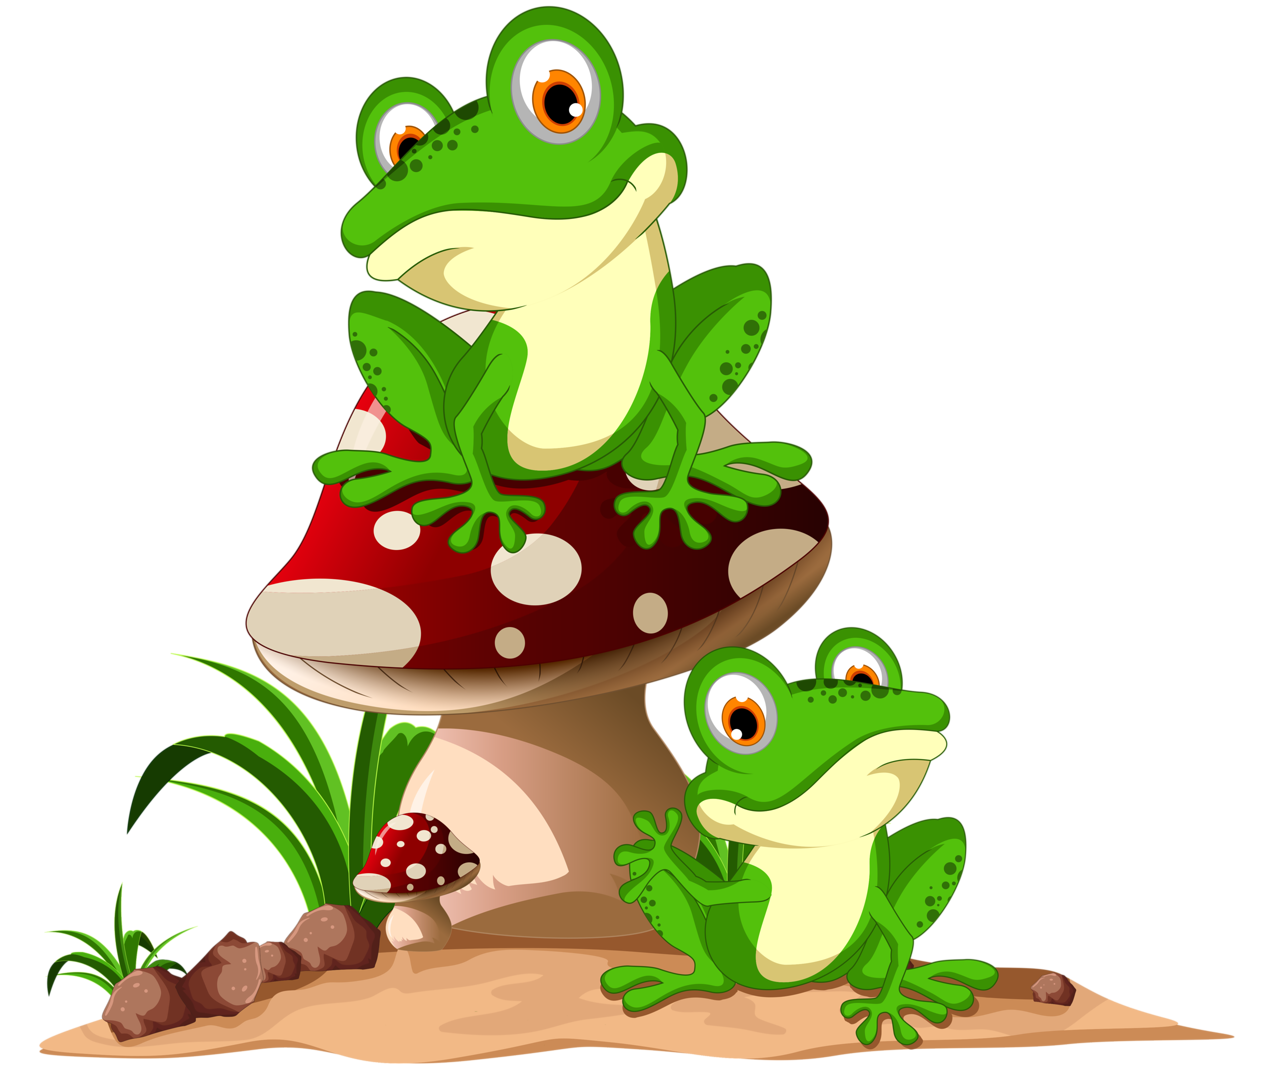 Free fish pond clipart picture freeuse download Toad Clipart Frog Pond Free collection | Download and share Toad ... picture freeuse download